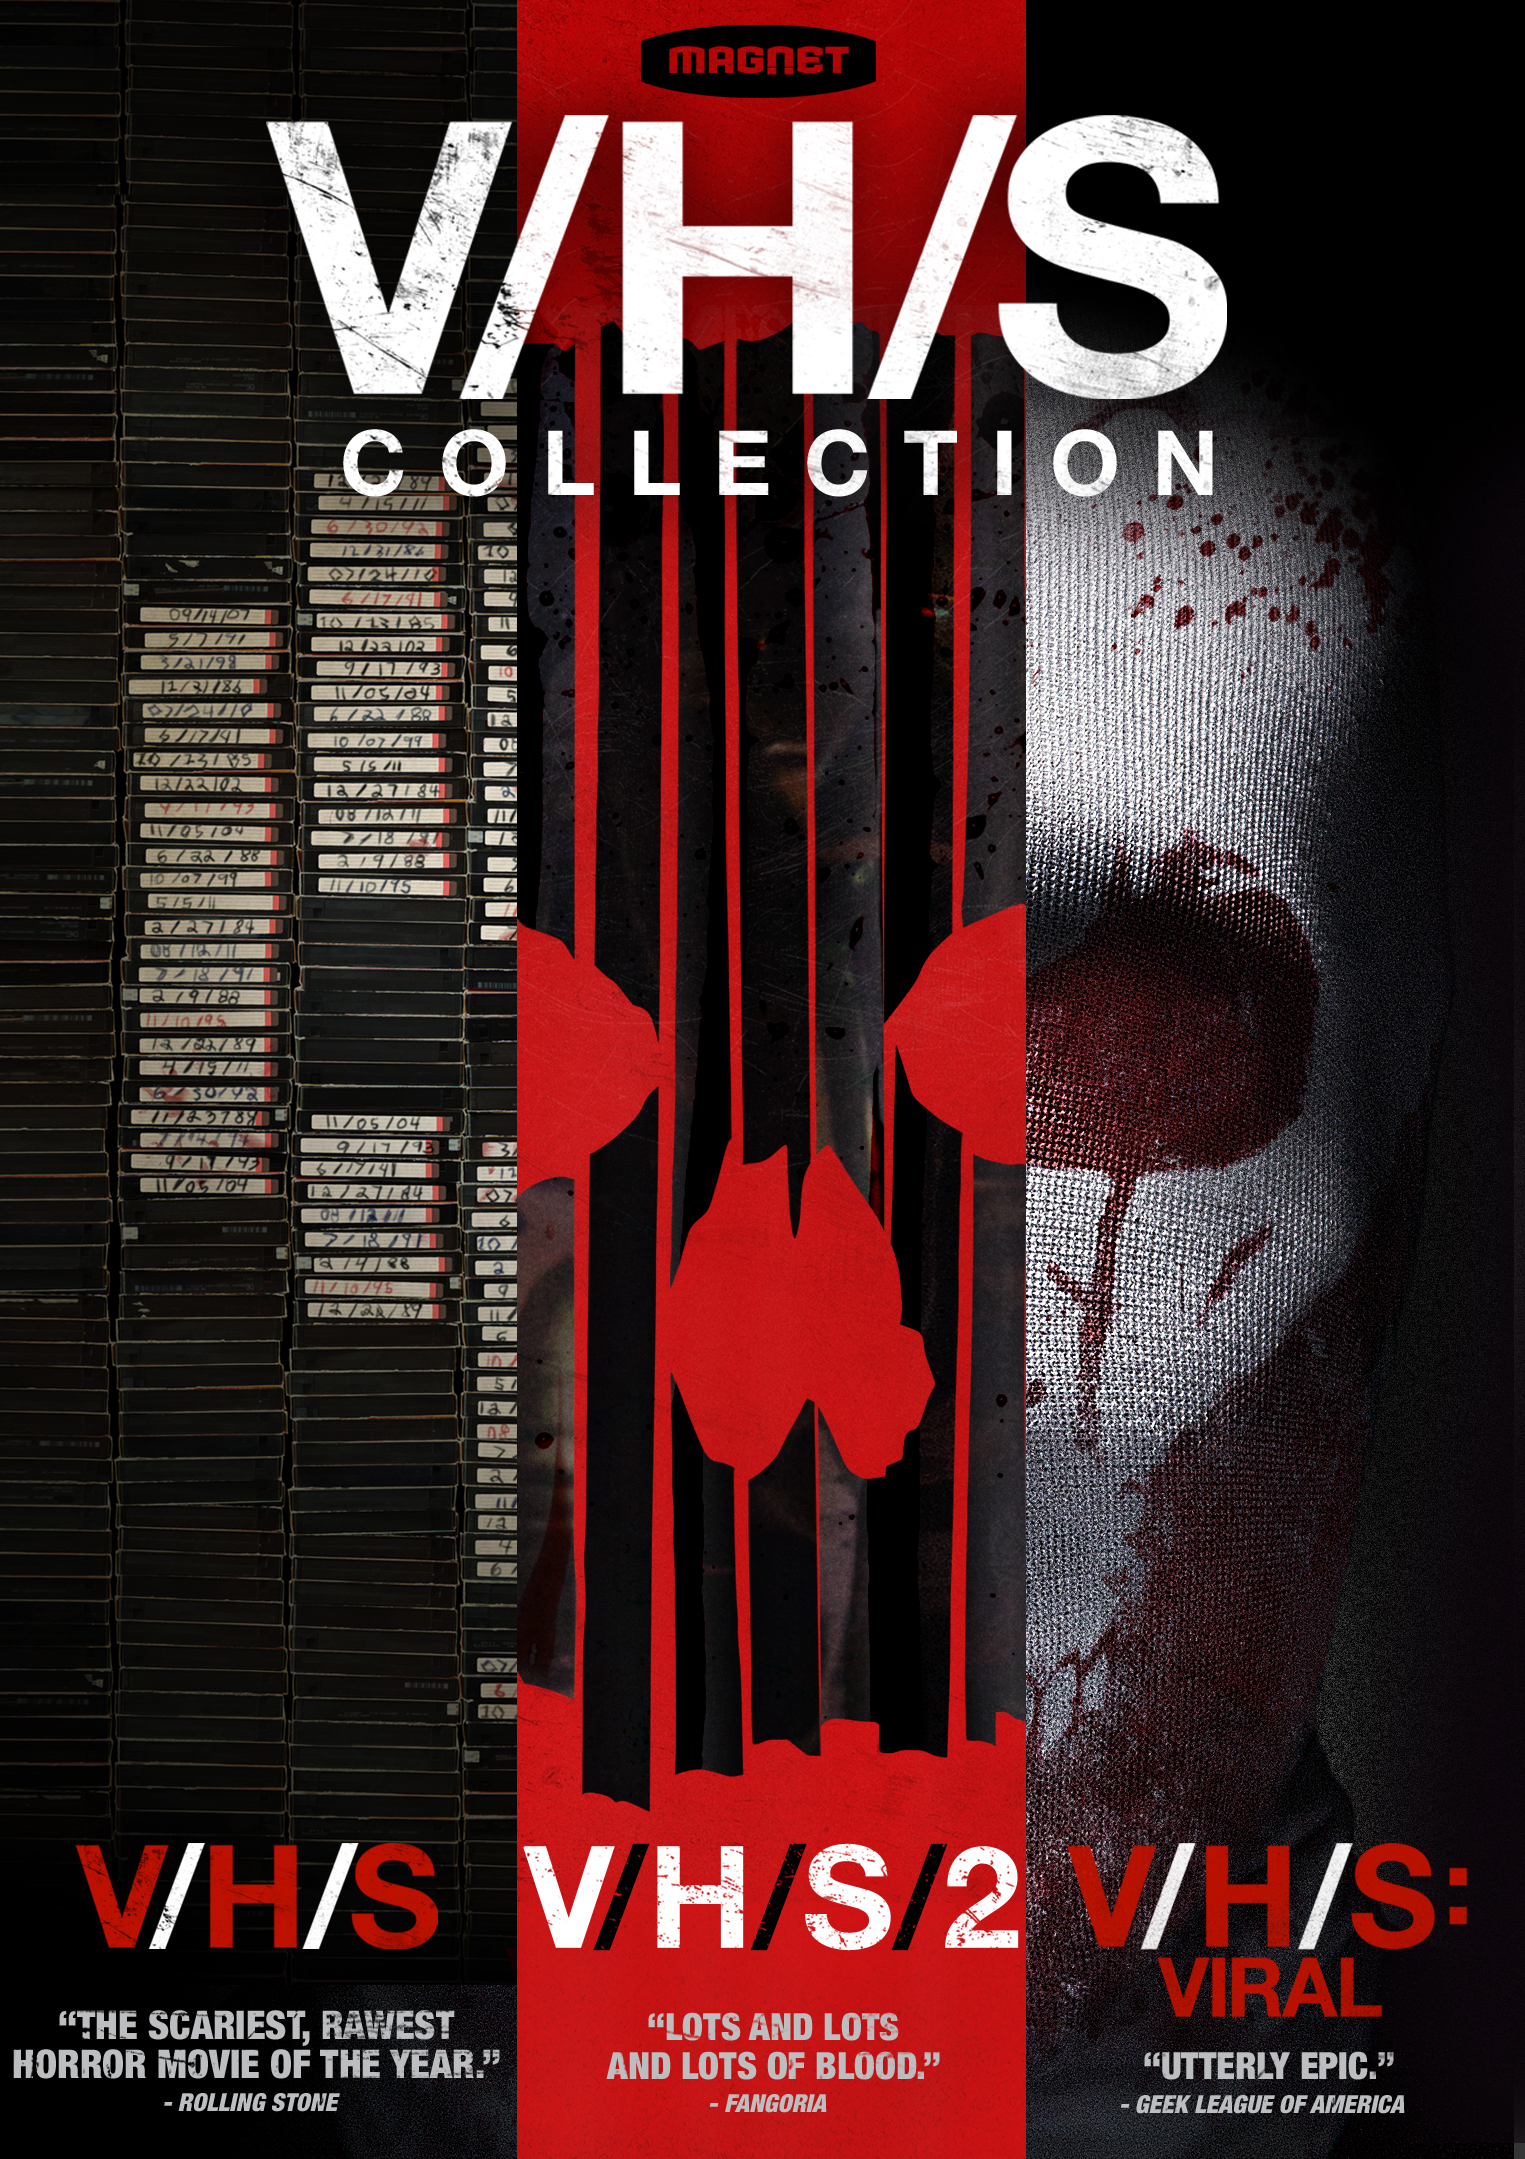 V/H/S COLLECTION